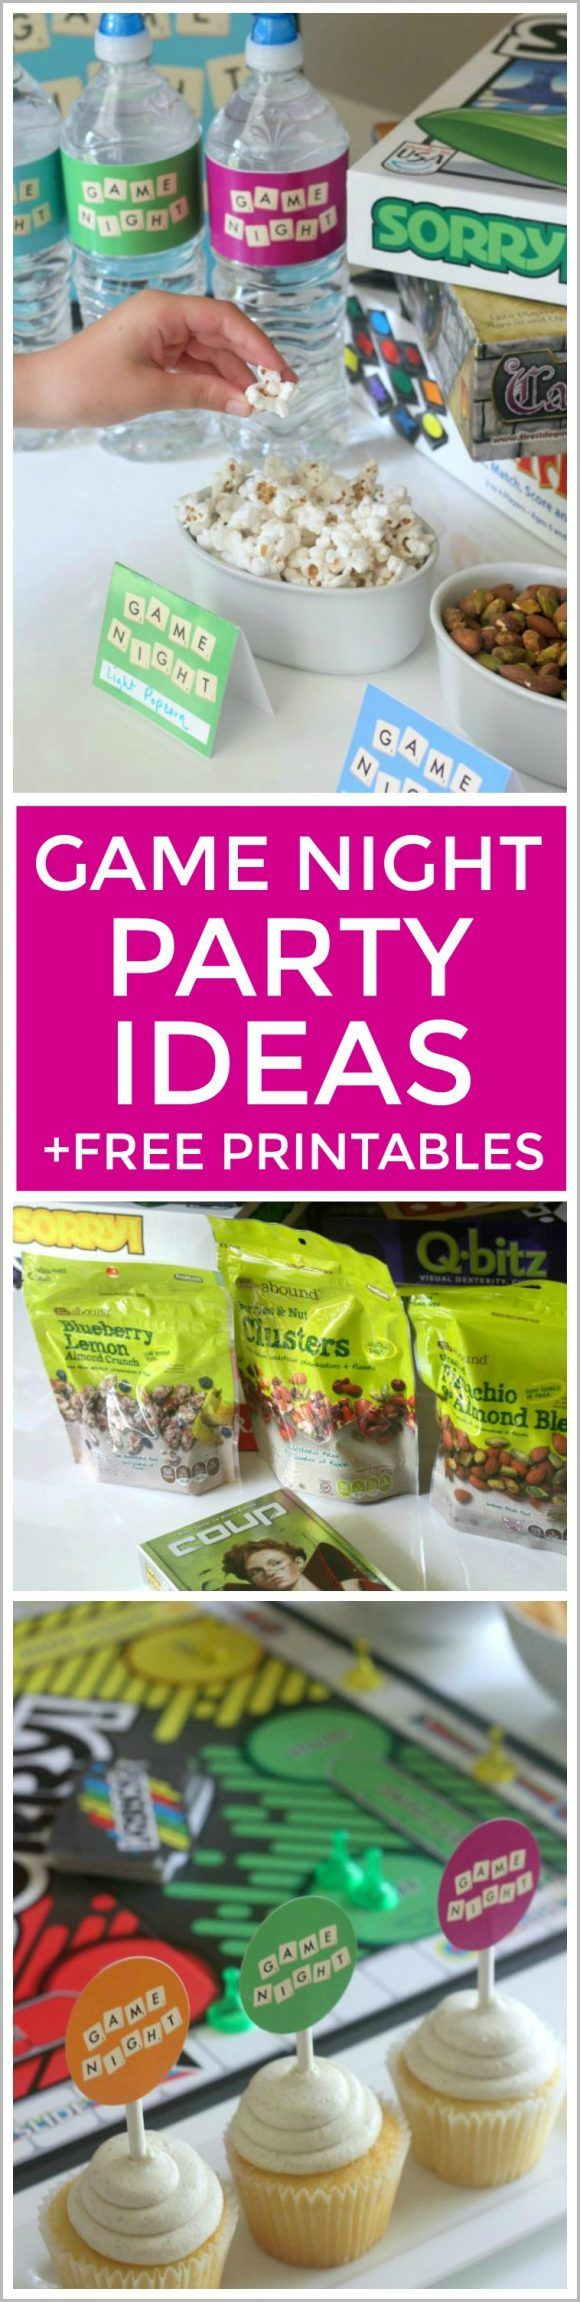 How To Throw A Game Night Party for your friends or family